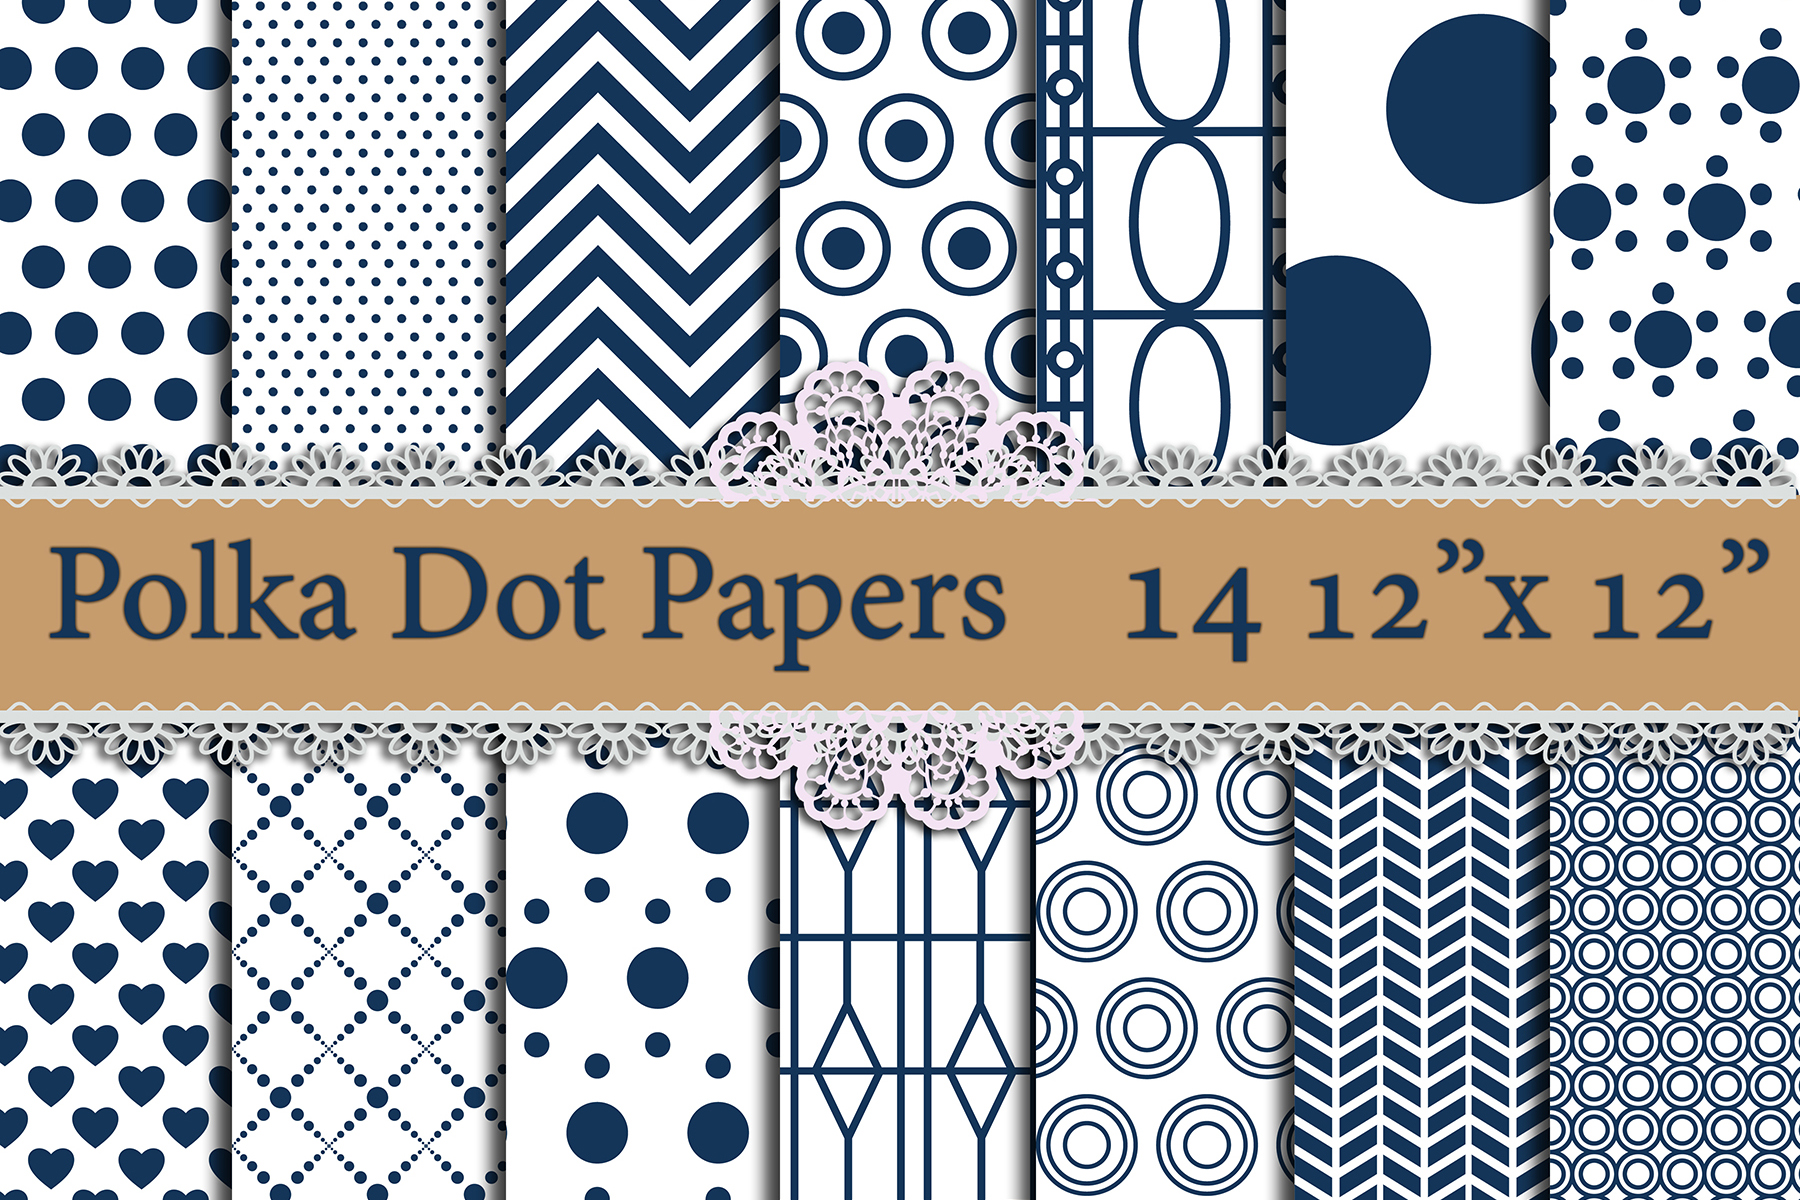 Blue Polka Dot Digital Paper,POLKA DOT PATTERN, Printable Patterns Graphic By prettydesignstudio